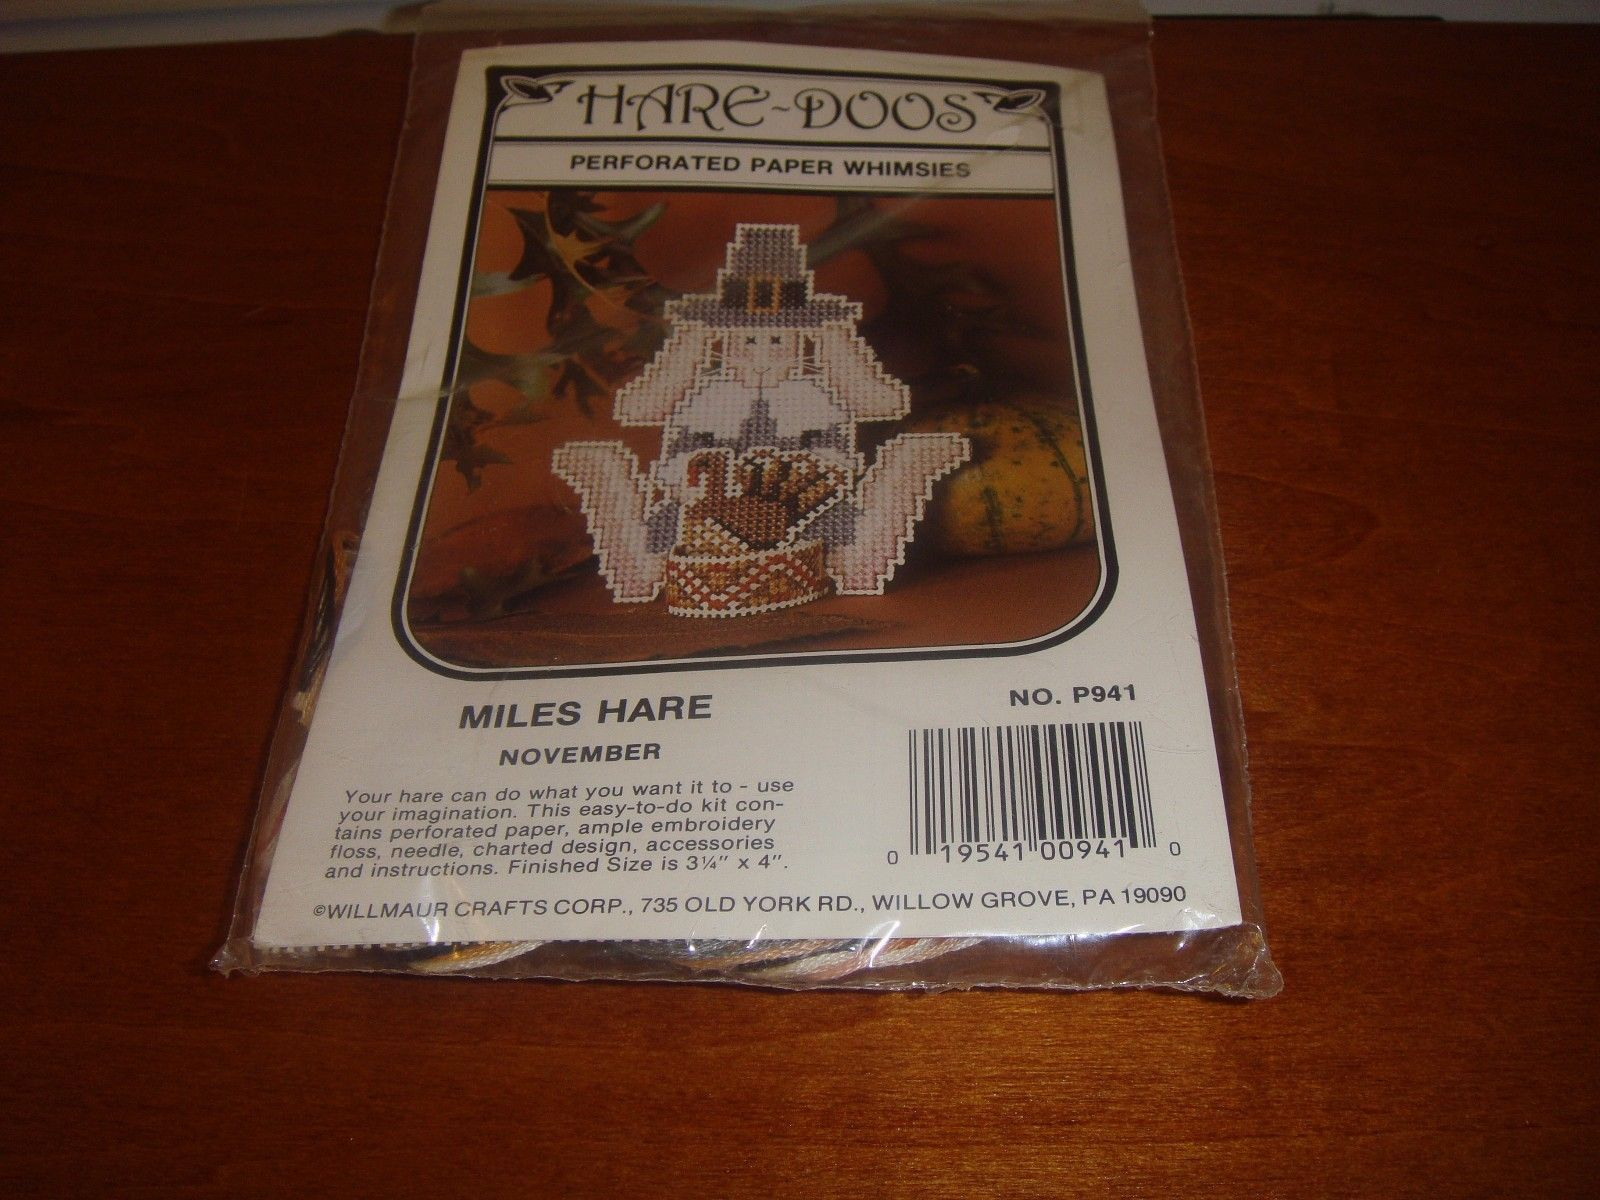 Willmaur Hare~Doos Perforated Paper Whimsies Miles Hare November Cross Stitch